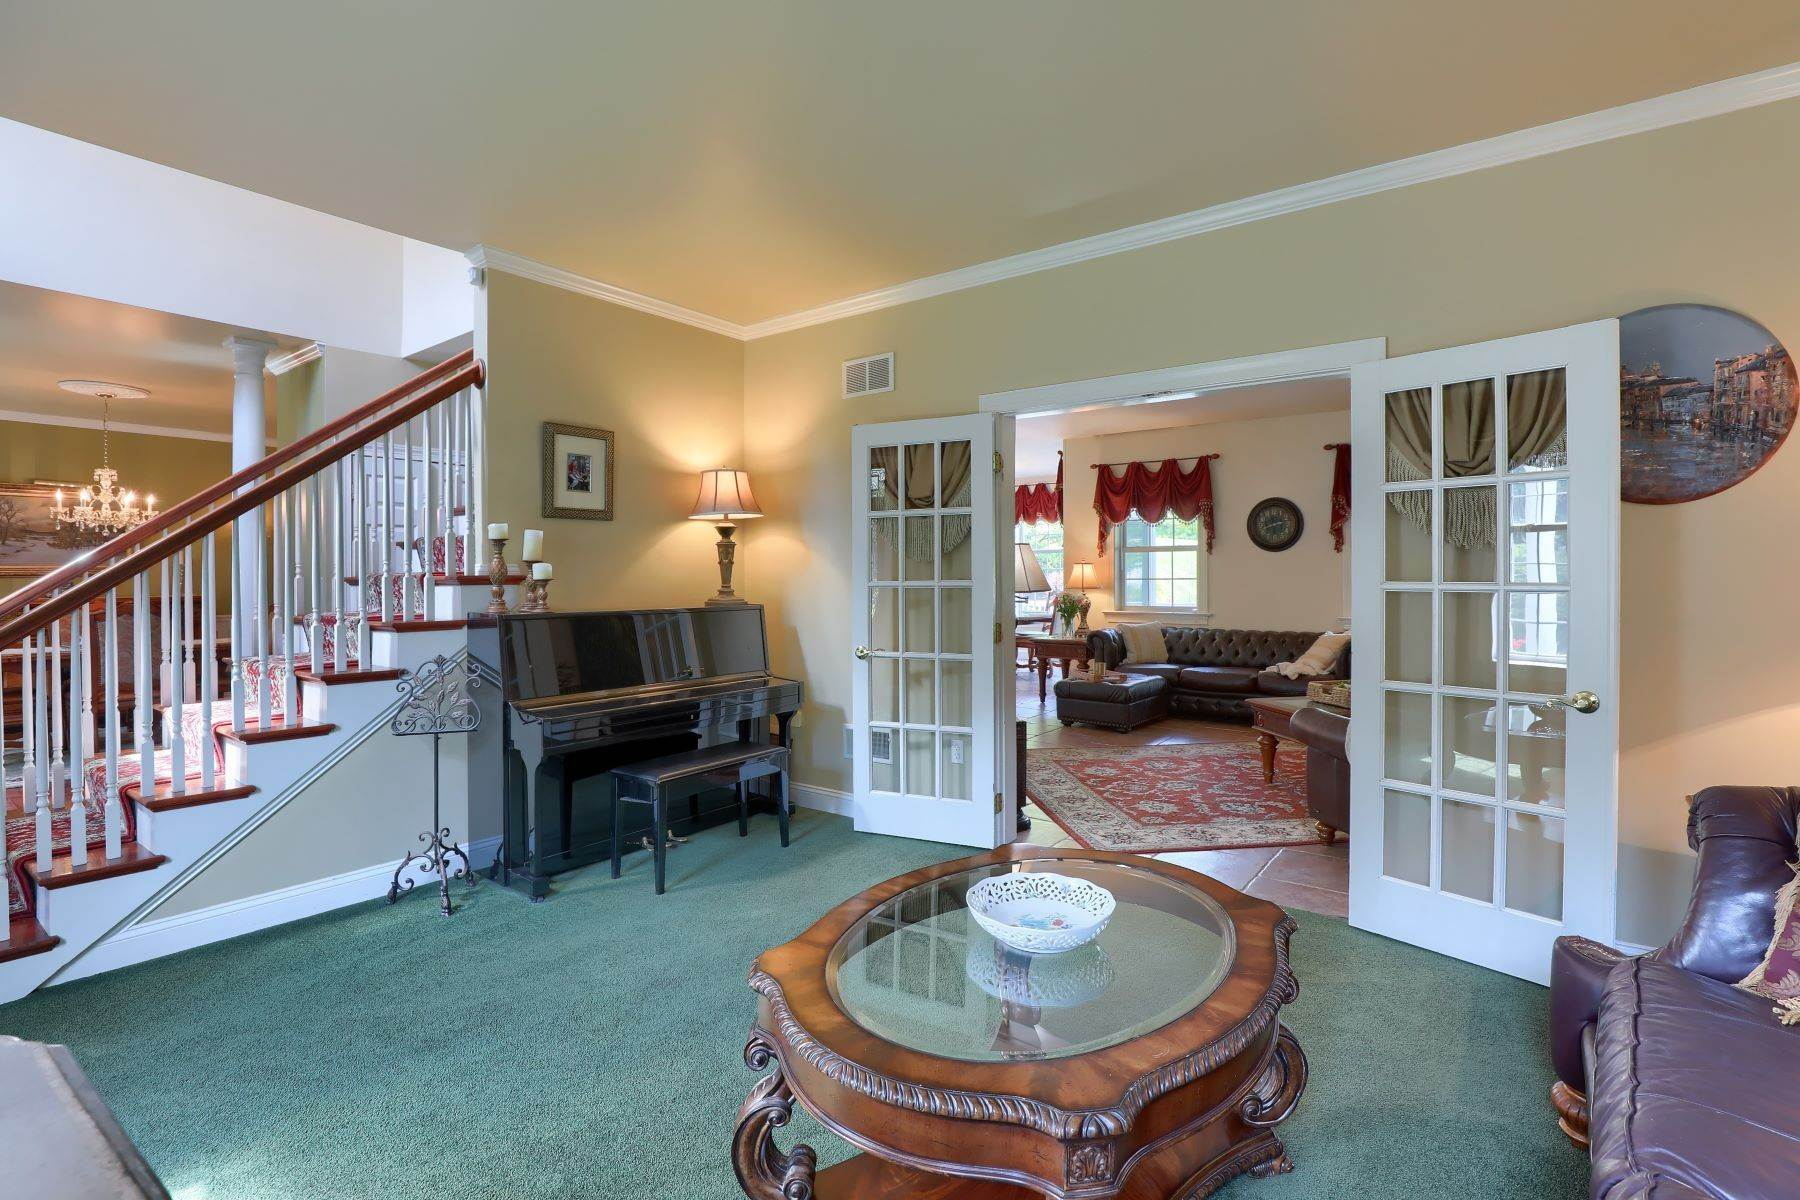 9. Single Family Homes for Sale at 195 W Millport Road Lititz, Pennsylvania 17543 United States